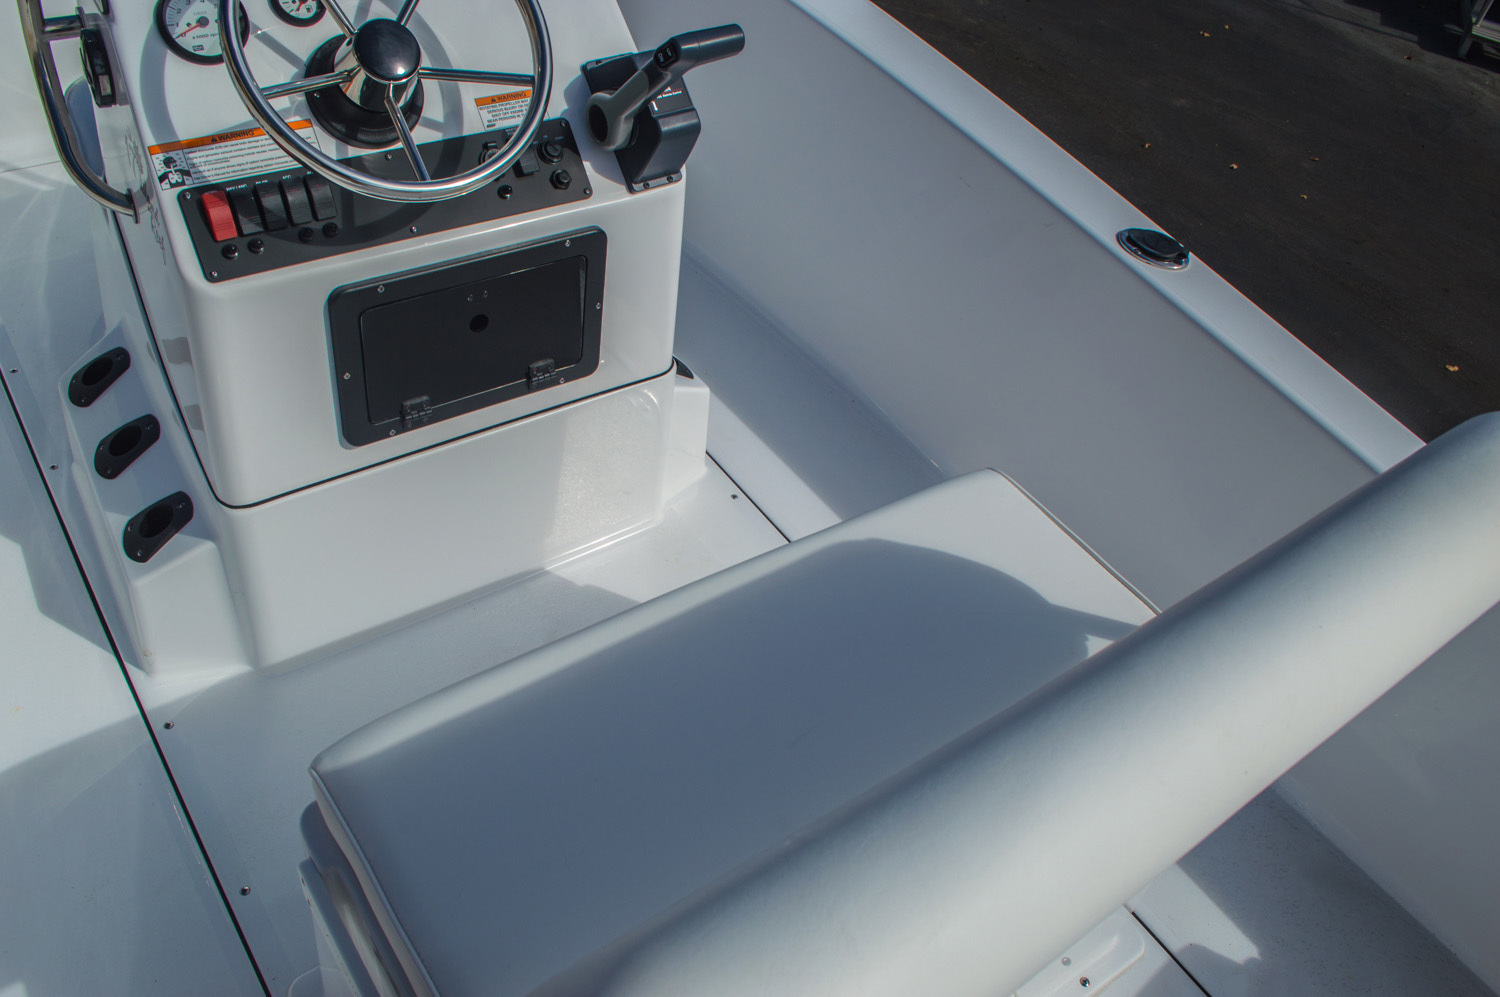 Thumbnail 13 for New 2016 Sportsman 17 Island Reef boat for sale in Vero Beach, FL